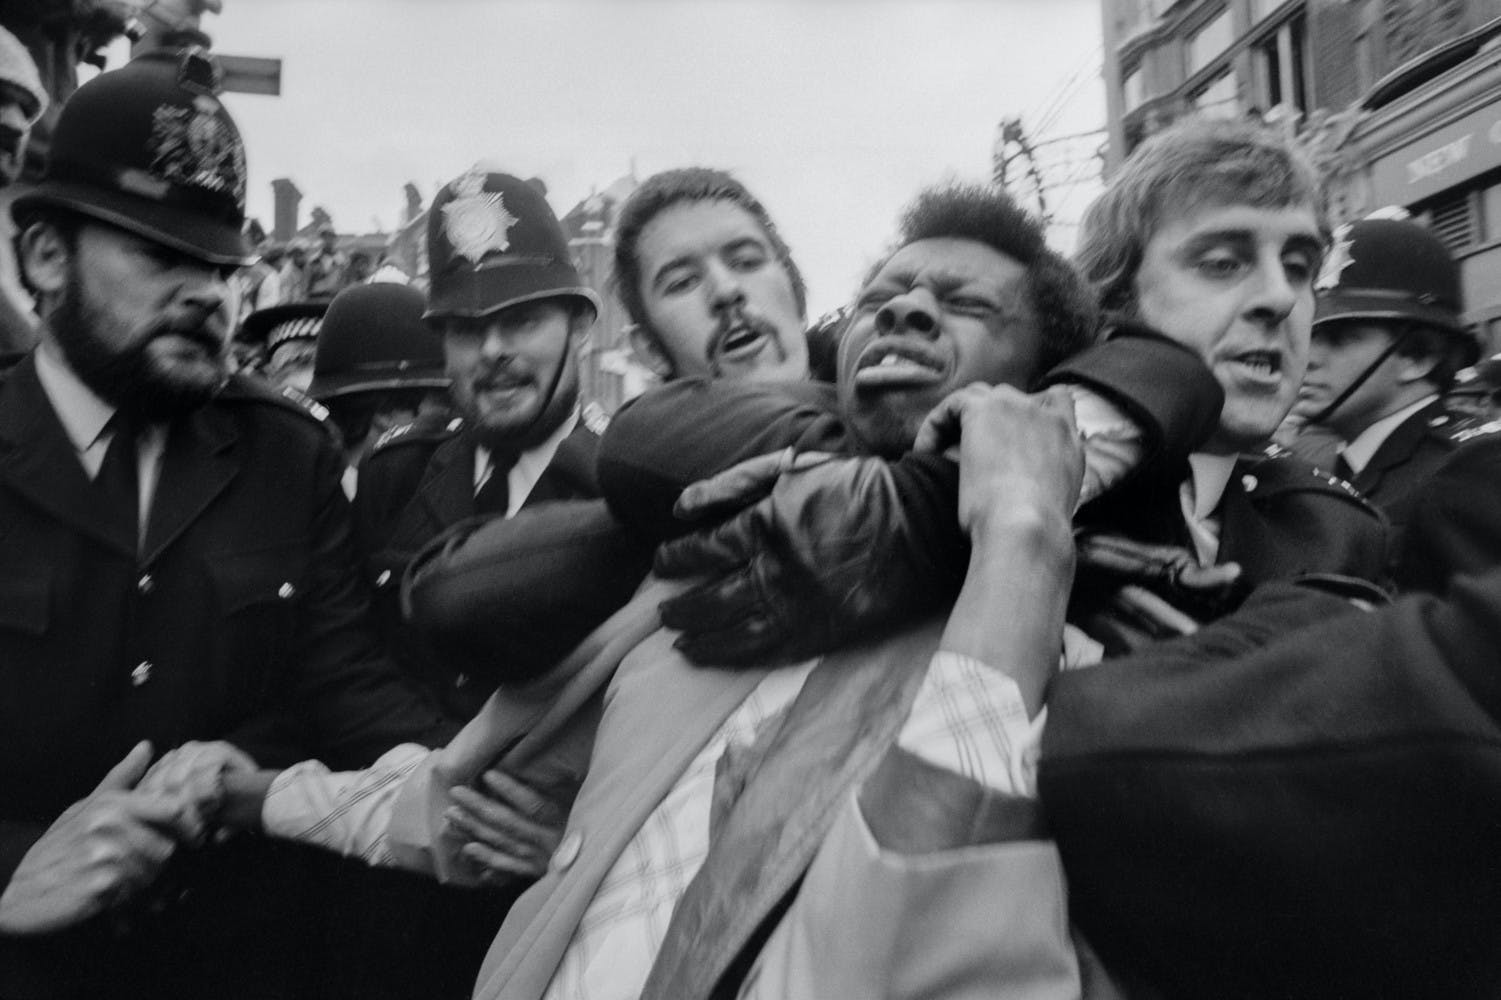 Peter Marlow Race Riots in Lewisham. Police making an arrest. England. London. GB. 1977.